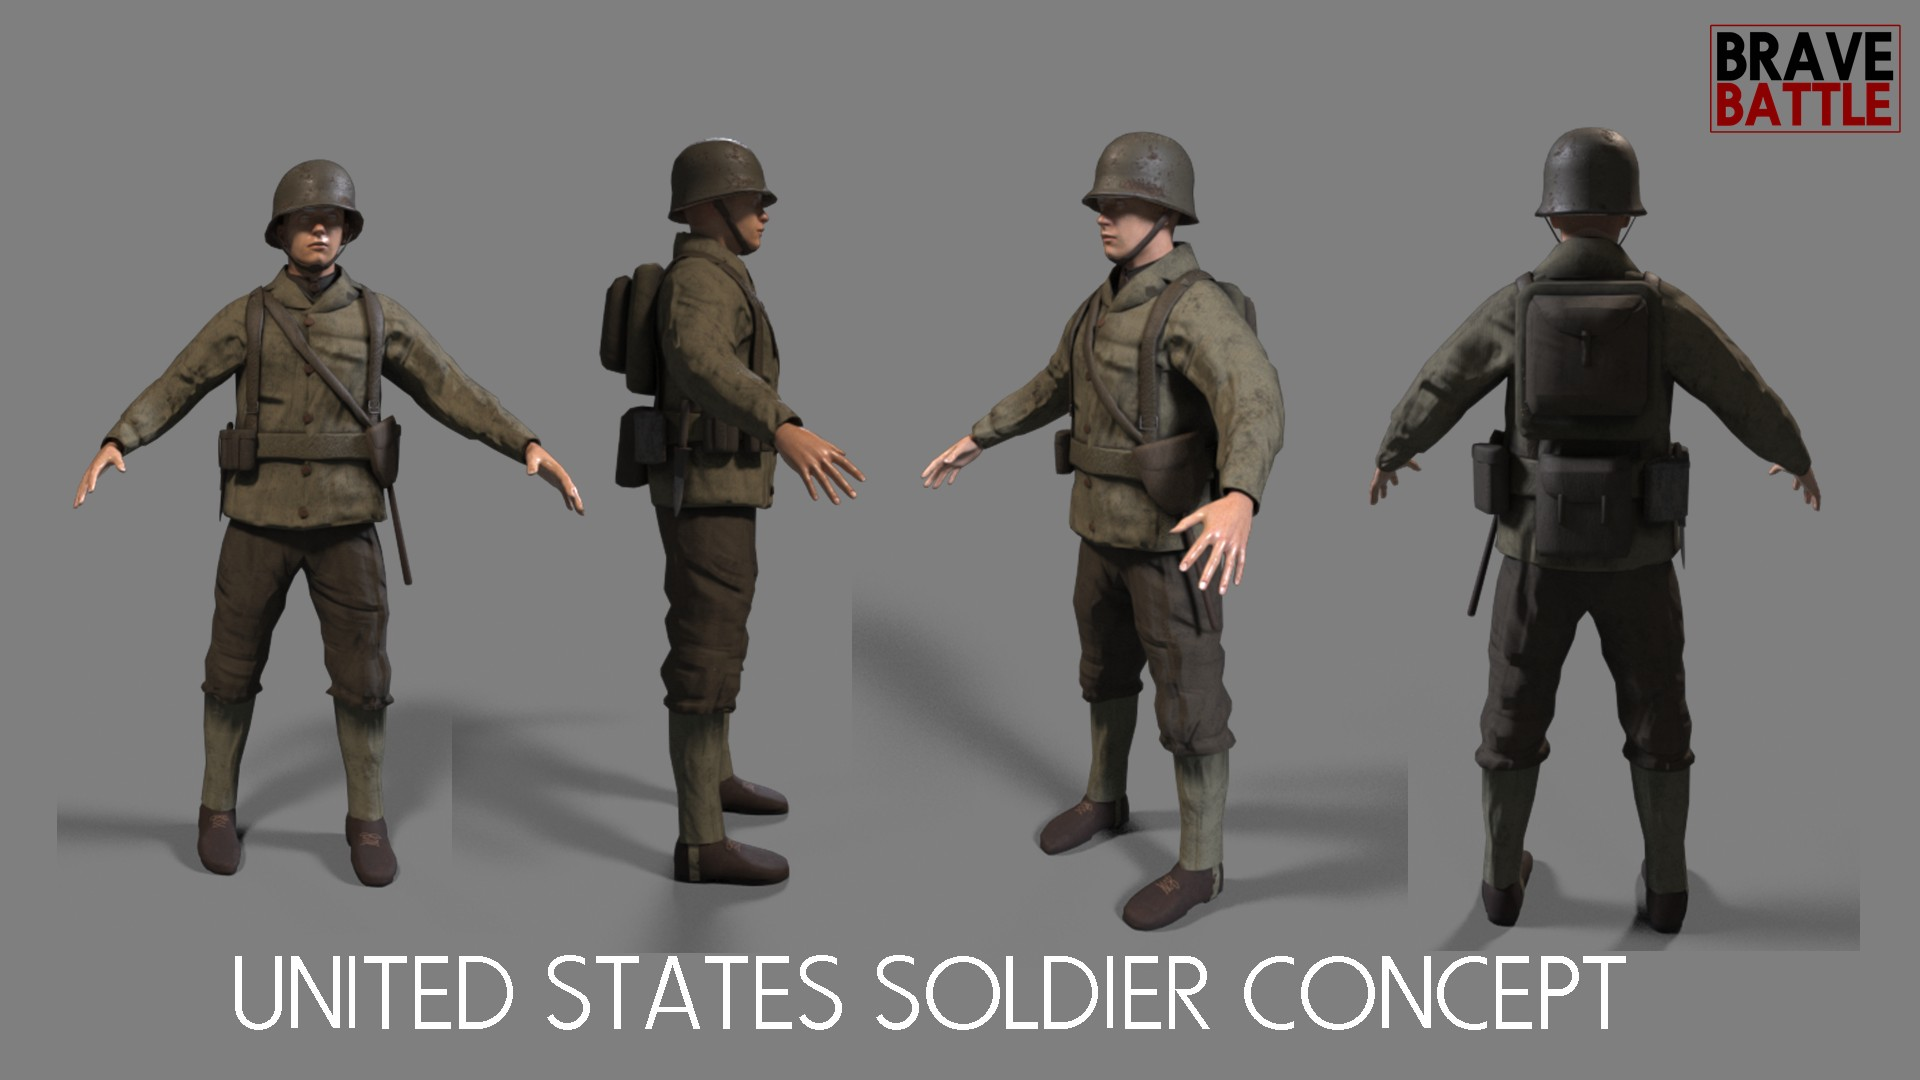 United States Soldier Concept